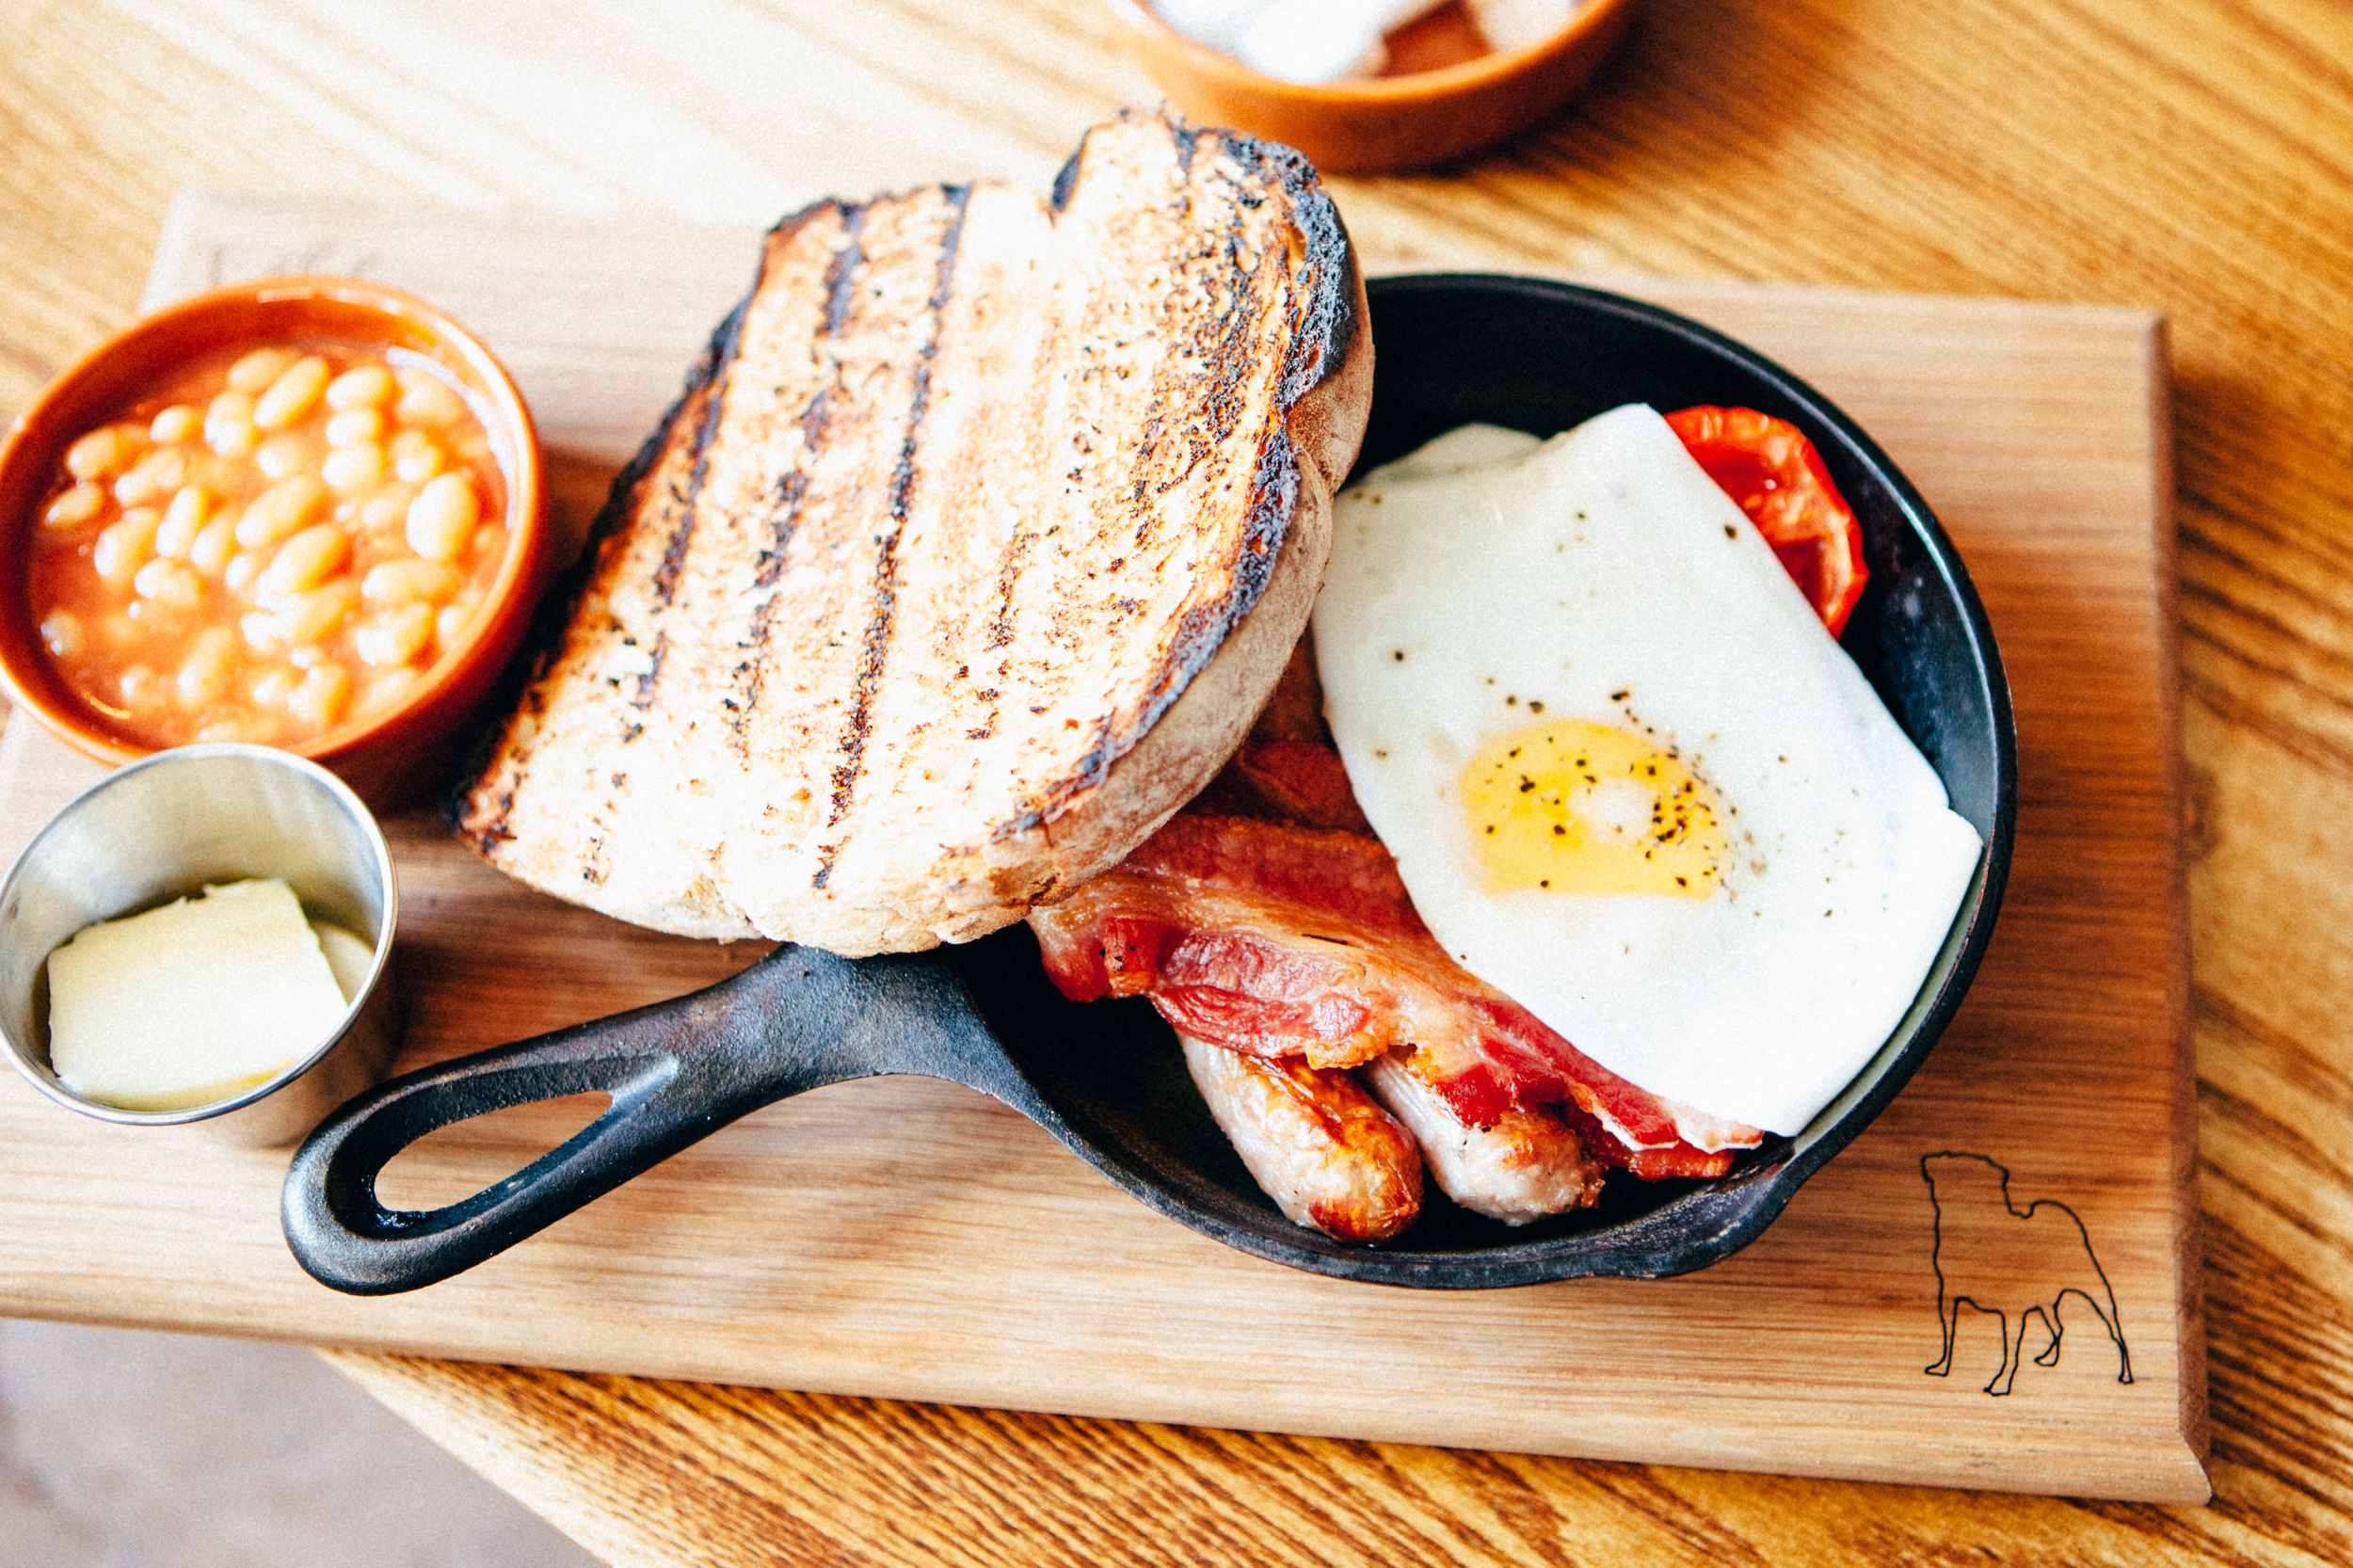 Join us for brekkie this Christmas eve!